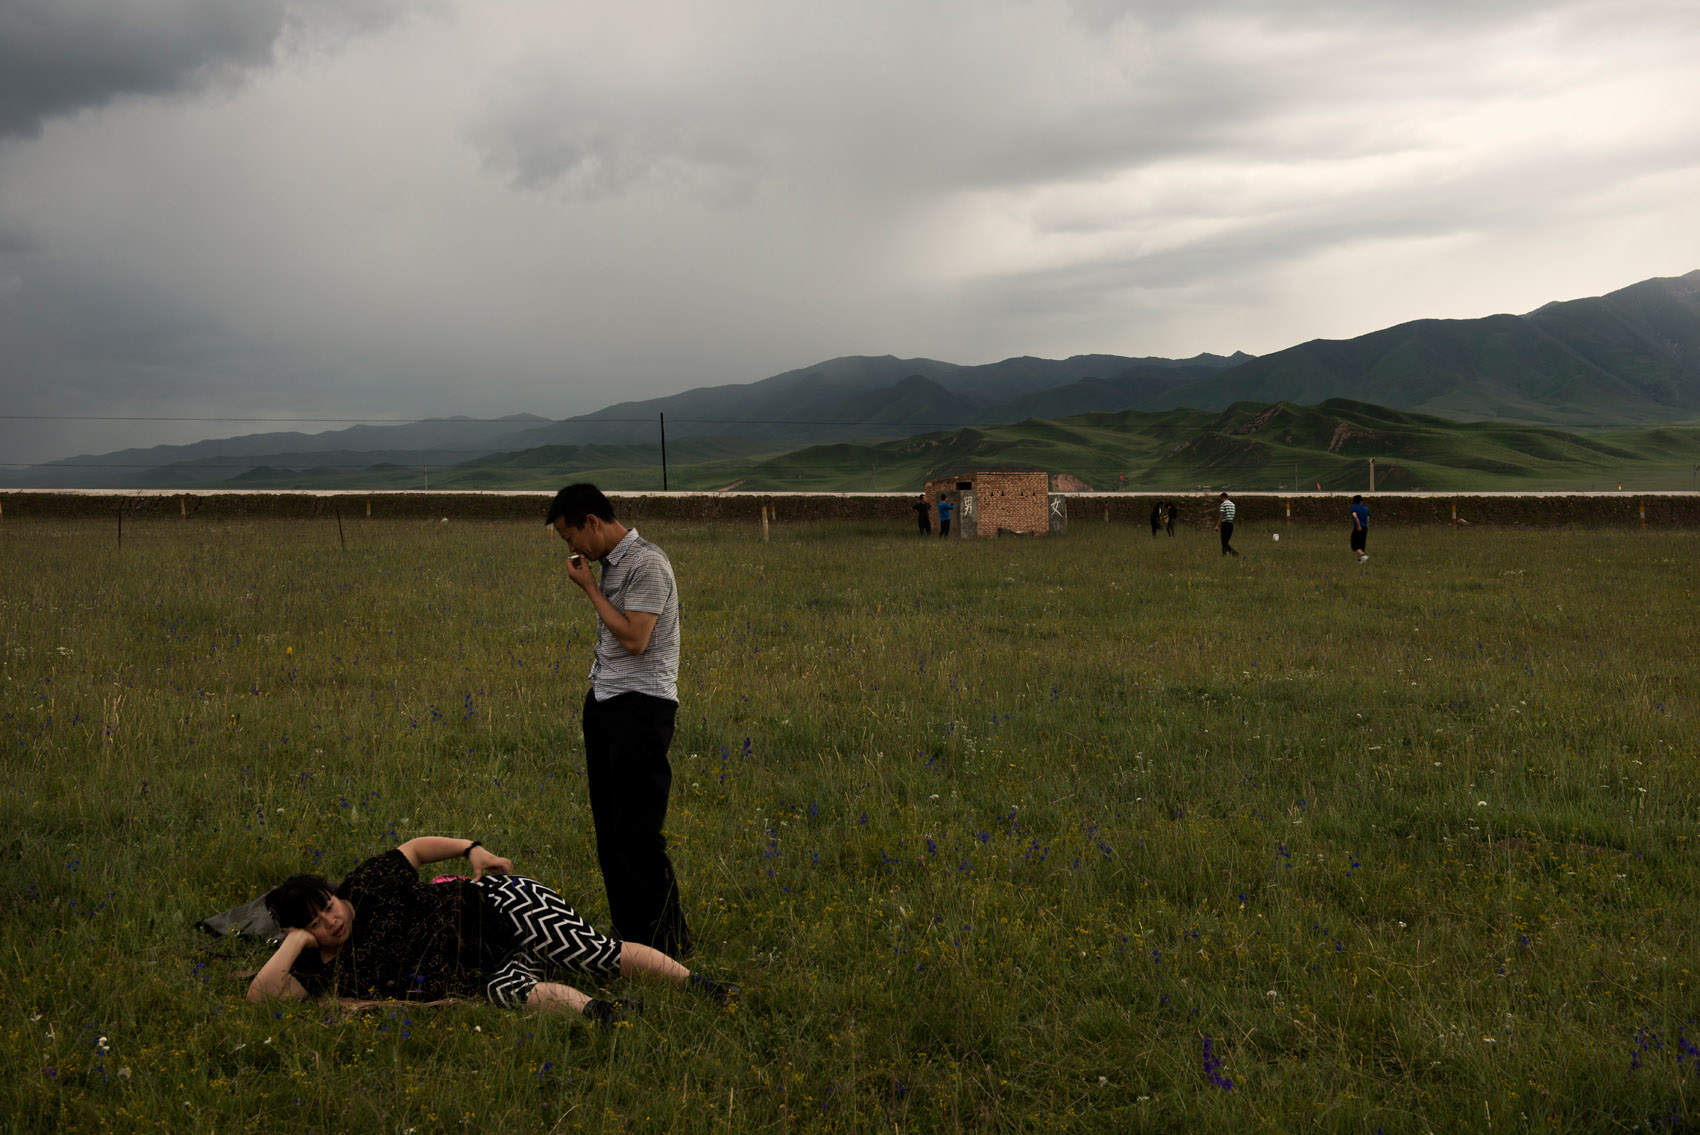 Chinese tourists enjoying the Tibetan grassland near Xiahe (Gansu). Some Tibetan nomads in the region have set-up camps for tourists, cashing on the fascination for nomadic lifestyle.. A new source of income for them as their livelihood is under threat by a resettlement plan.